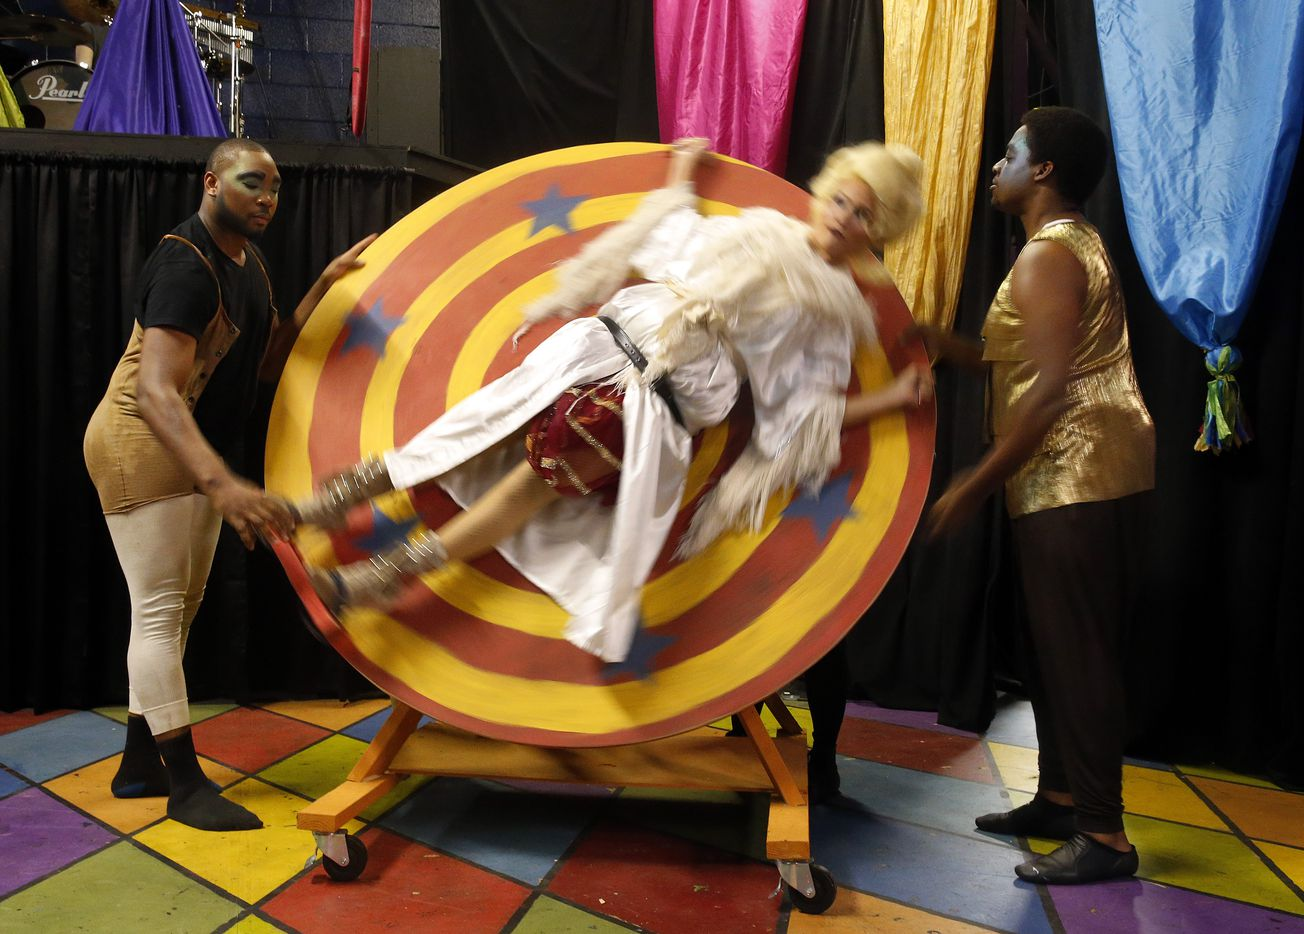 Kim Borge Swarner (Fastrada) is spun on a wheel by actors Rodney M. Morris (left) and Ania Lyons as they tested the wheel and the knife-throwing during the Pippin dress rehearsal.